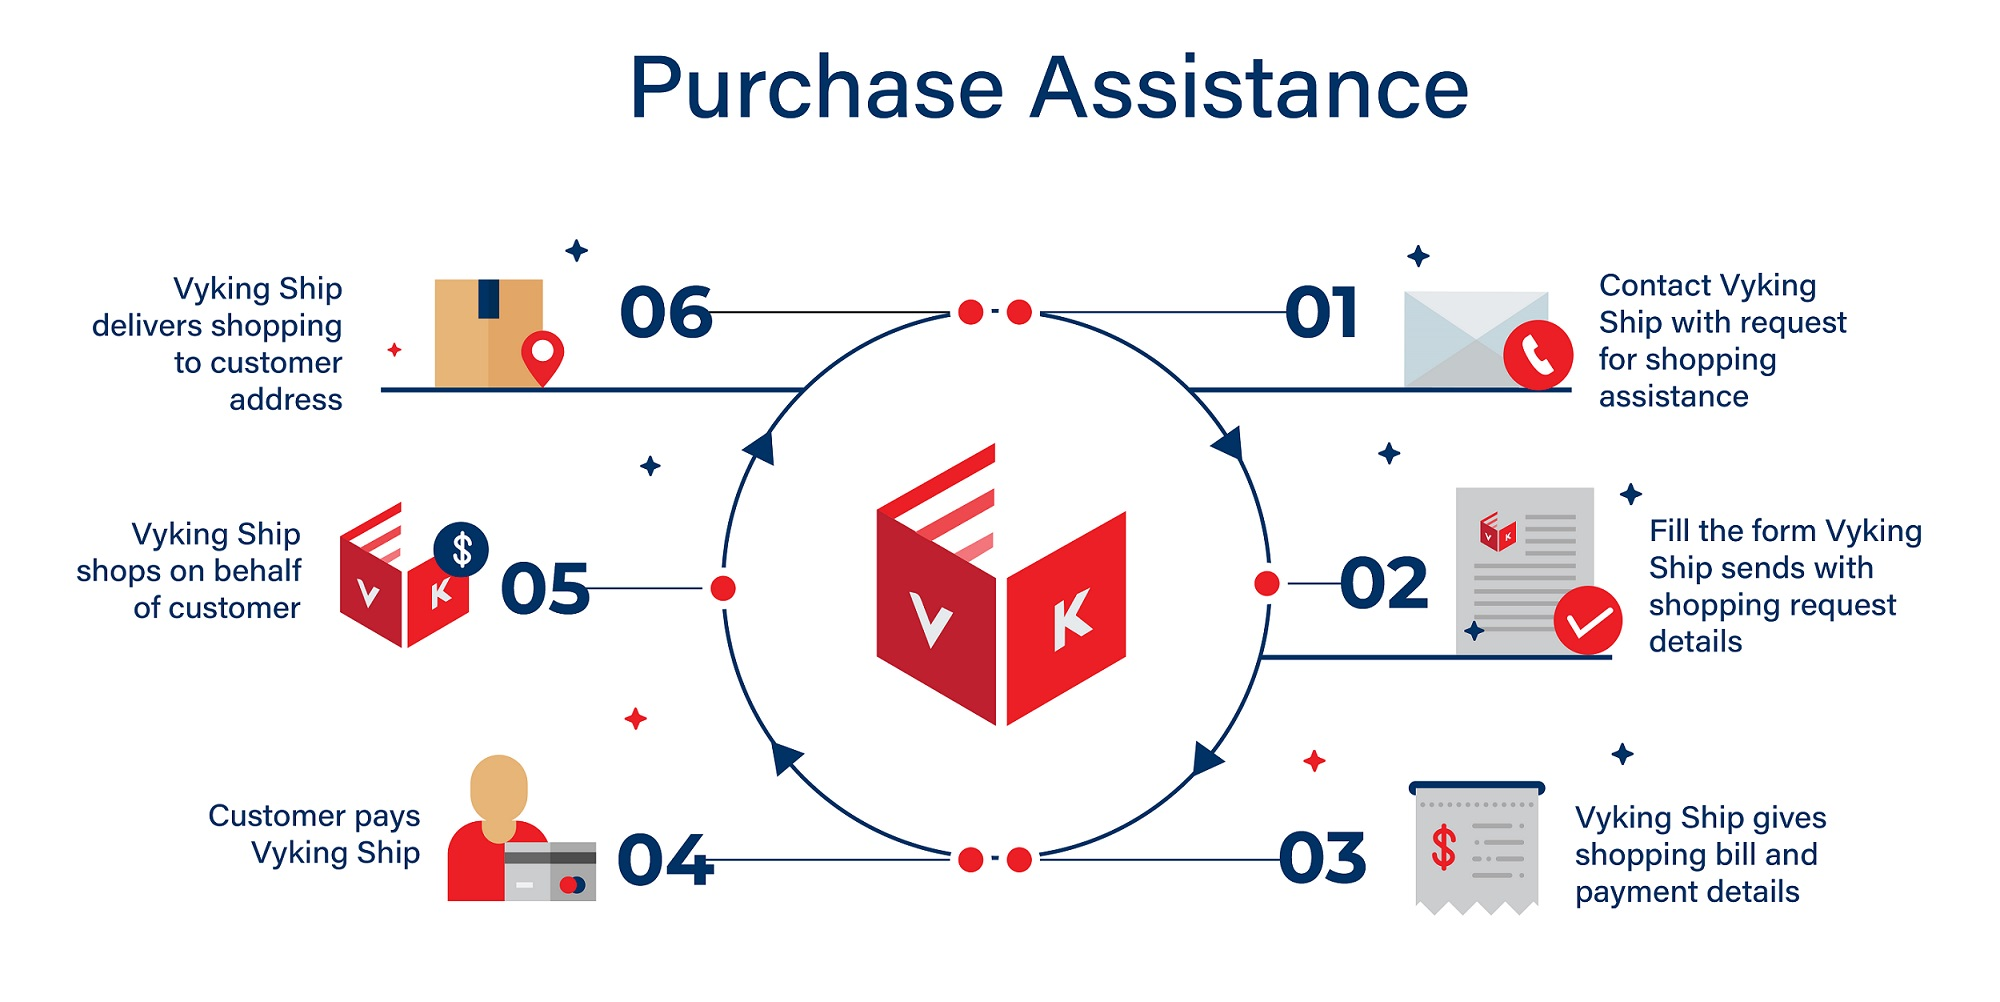 Vyking Ship Purchase Assistance